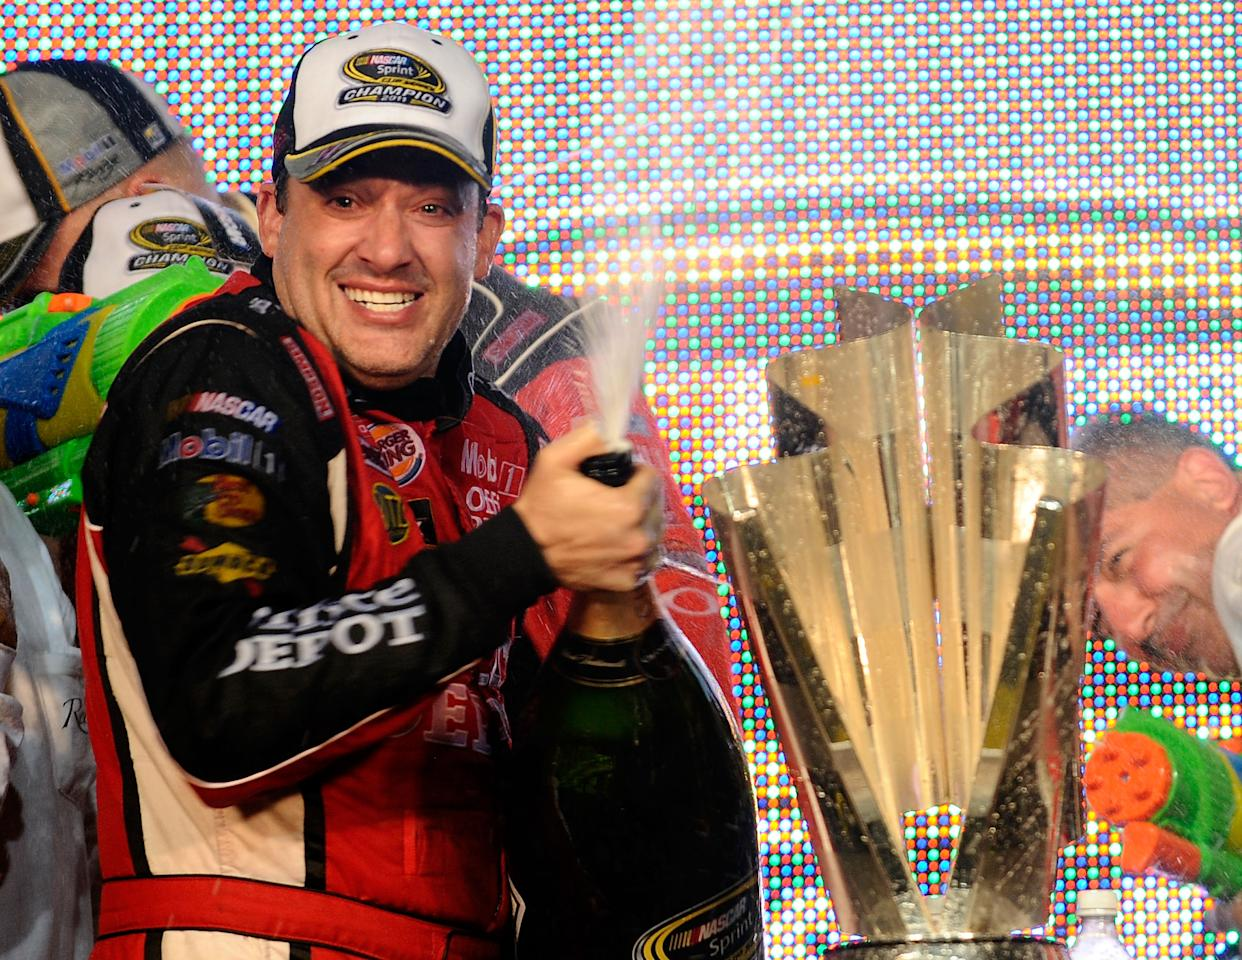 HOMESTEAD, FL - NOVEMBER 20:  Tony Stewart, driver of the #14 Office Depot/Mobil 1 Chevrolet, celebrates with the trophy in Victory Lane after winning the NASCAR Sprint Cup Series Ford 400 and the 2011 Series Championship at Homestead-Miami Speedway on November 20, 2011 in Homestead, Florida. Stewart wins his third NASCAR Championship.  (Photo by Jared C. Tilton/Getty Images)